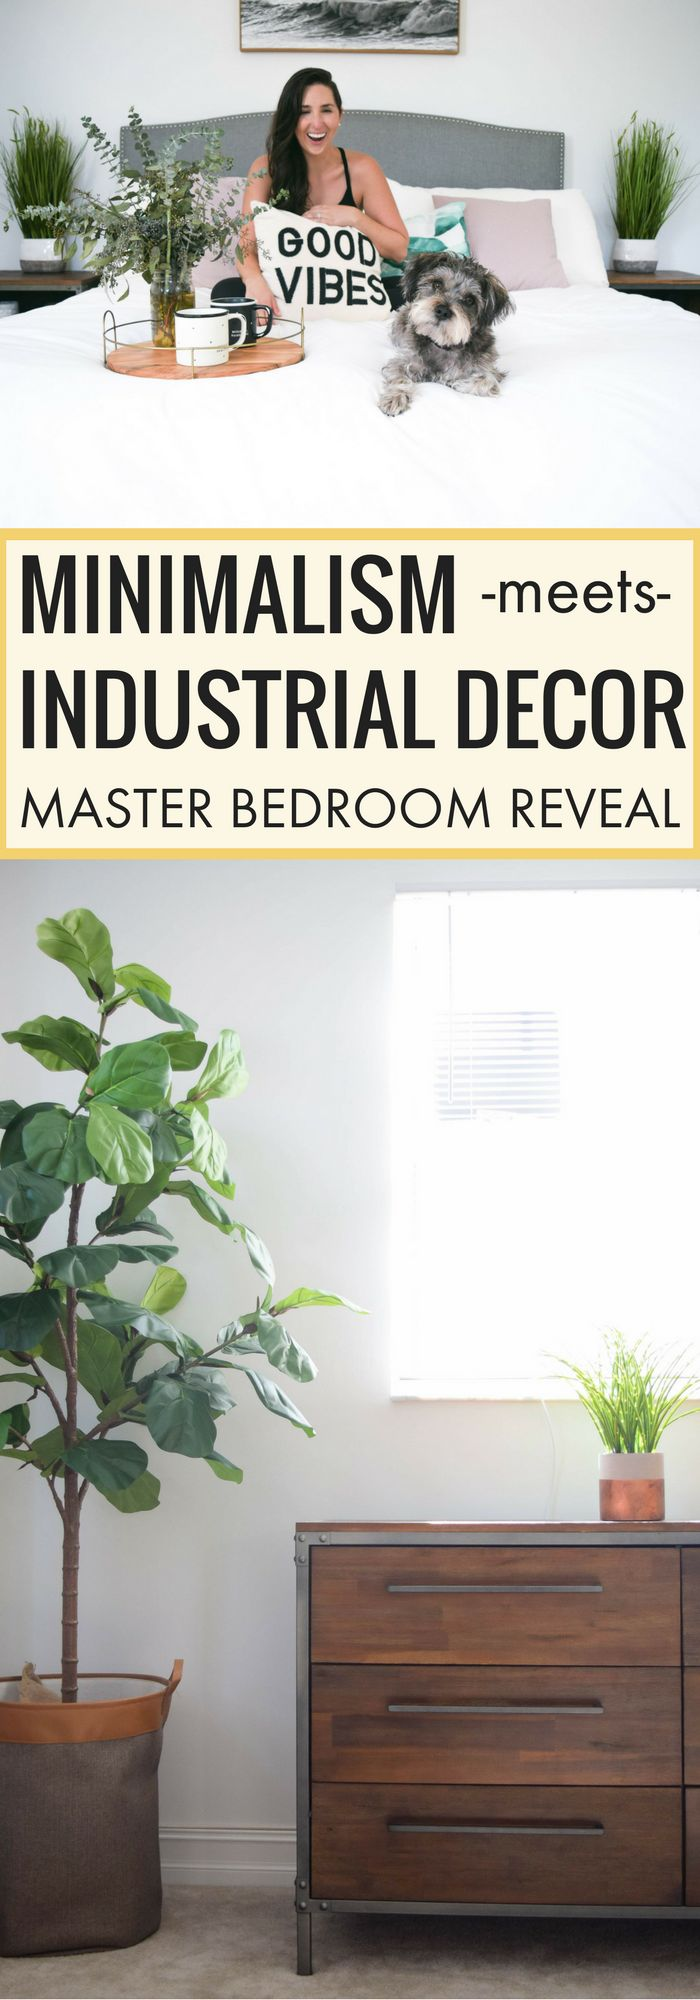 Neutral master bedroom tips, industrial minimalist decor ideas, how to decorate on a budget tips, #masterbedroom